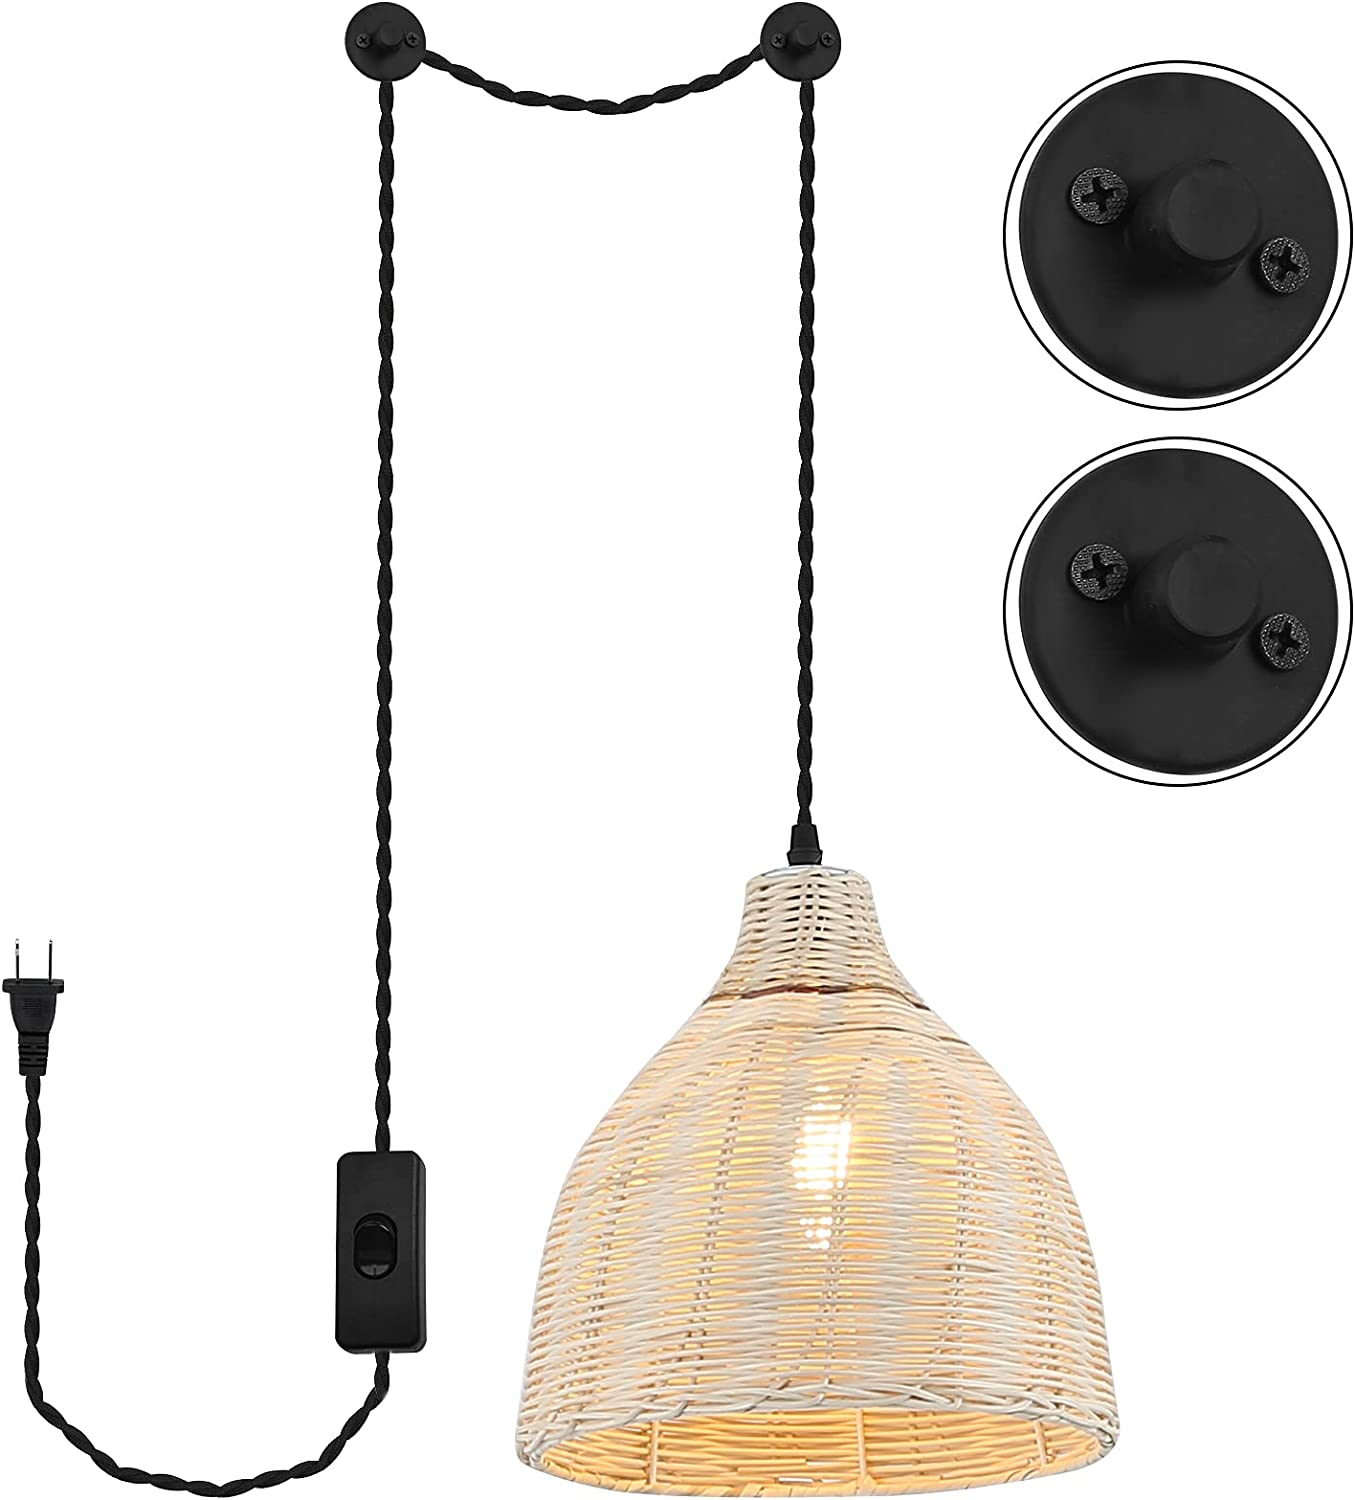 Plug in Vintage Super special price Pendant Lighting Lamp Hanging Bamboo Colorado Springs Mall Fixture for